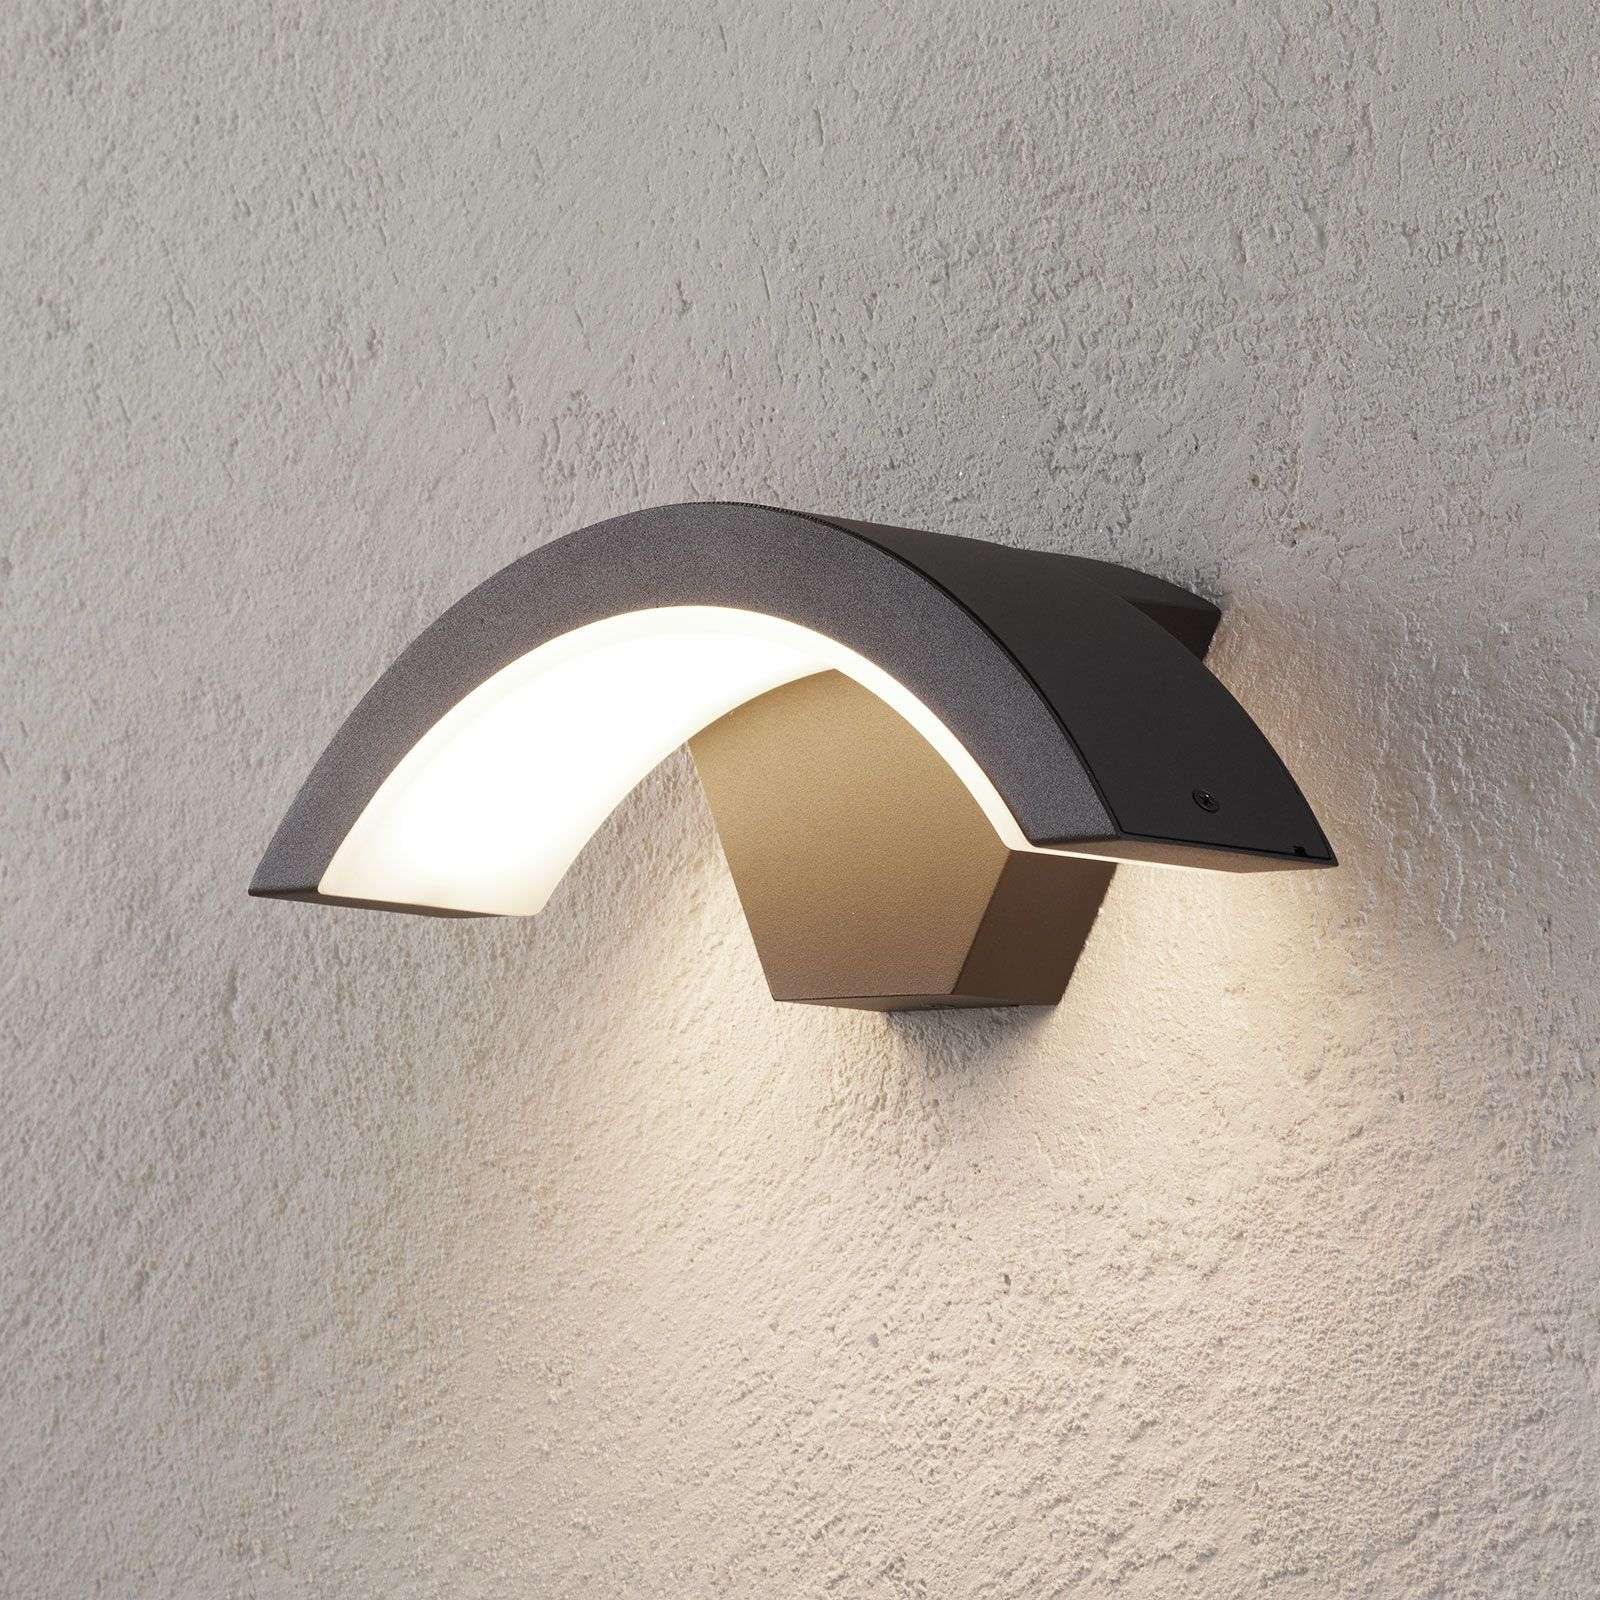 Ohio LED Outdoor Wall Light, Anthracite 9004662 31